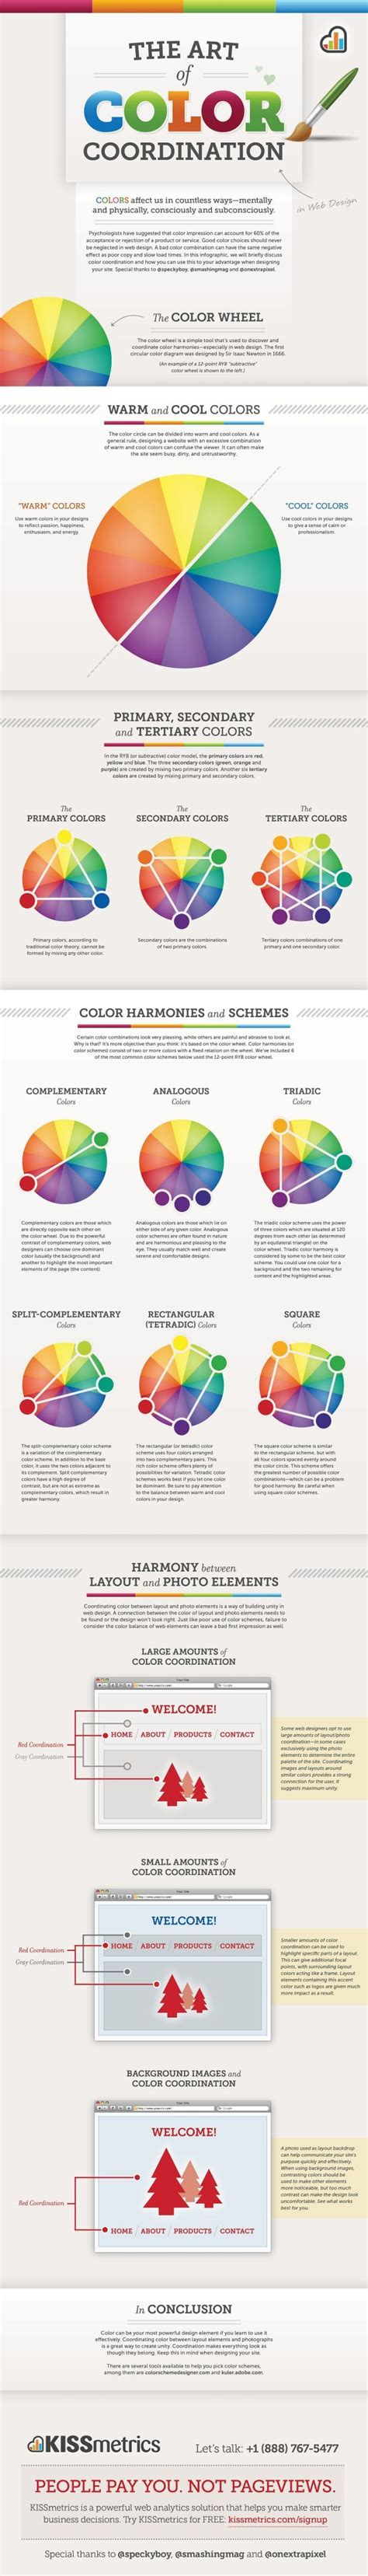 1000 ideas about principles of design on pinterest